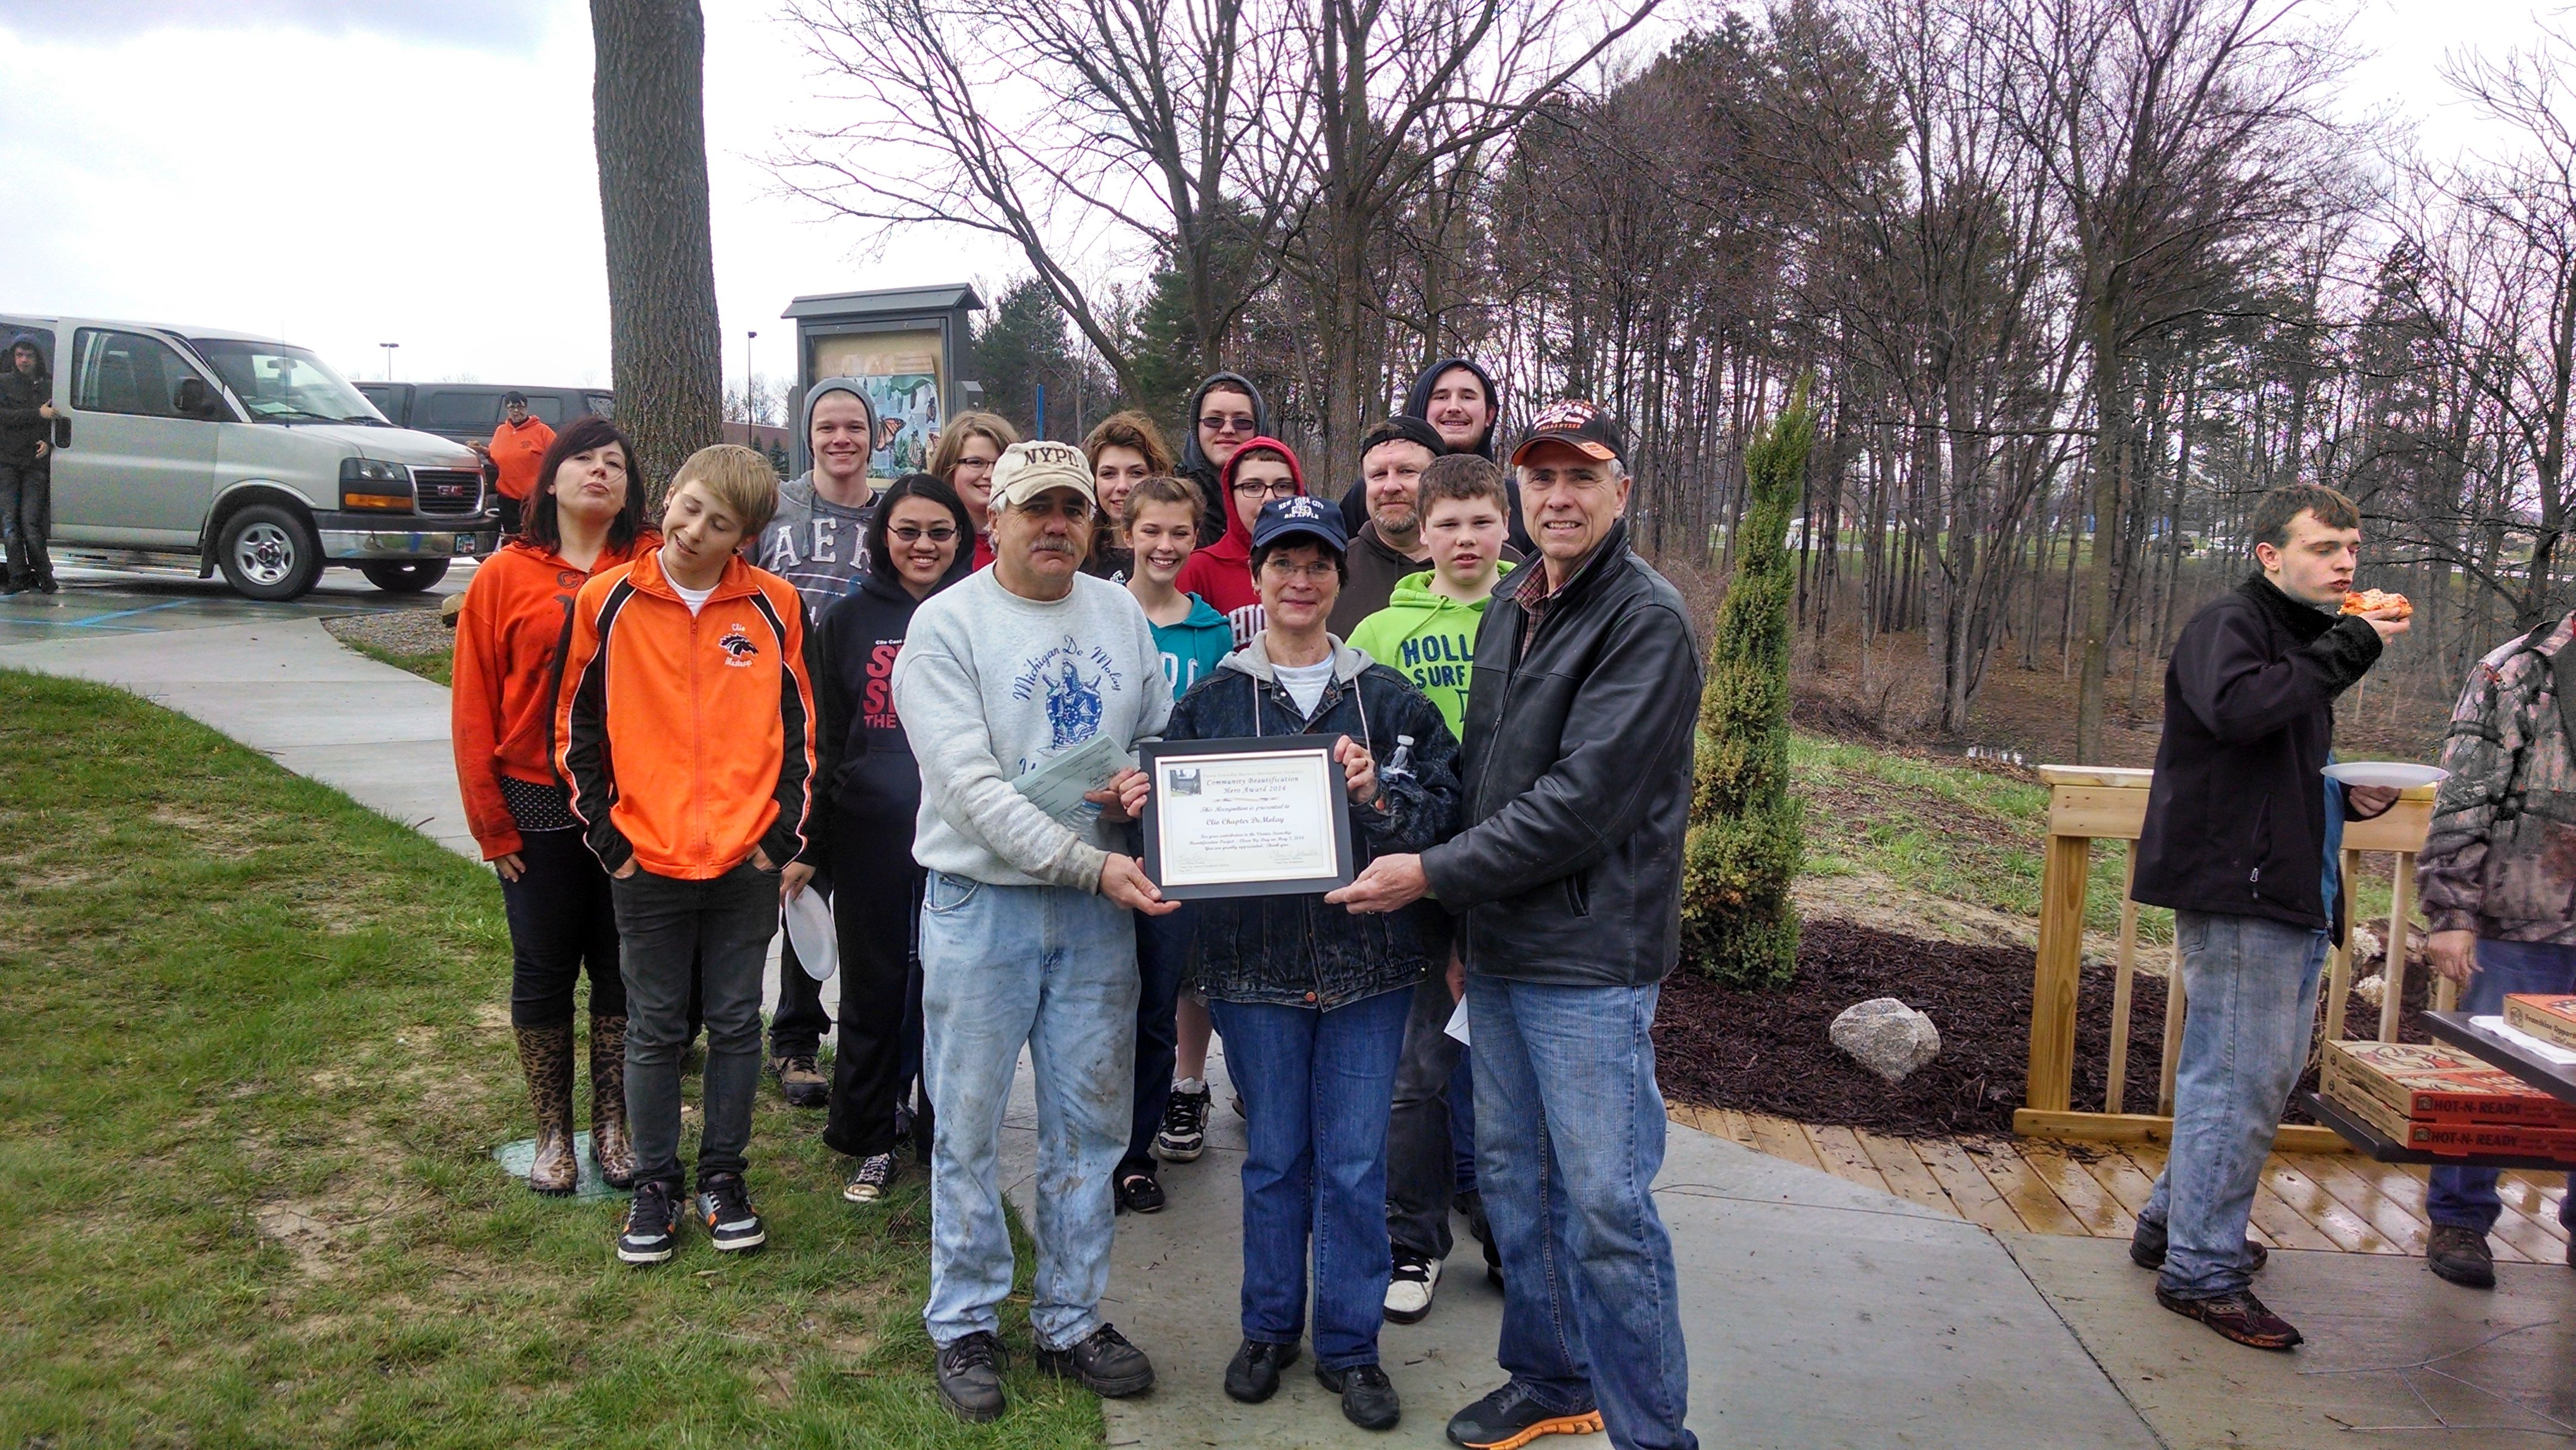 Clio mi clean up day may 3 2014 sponsored by the